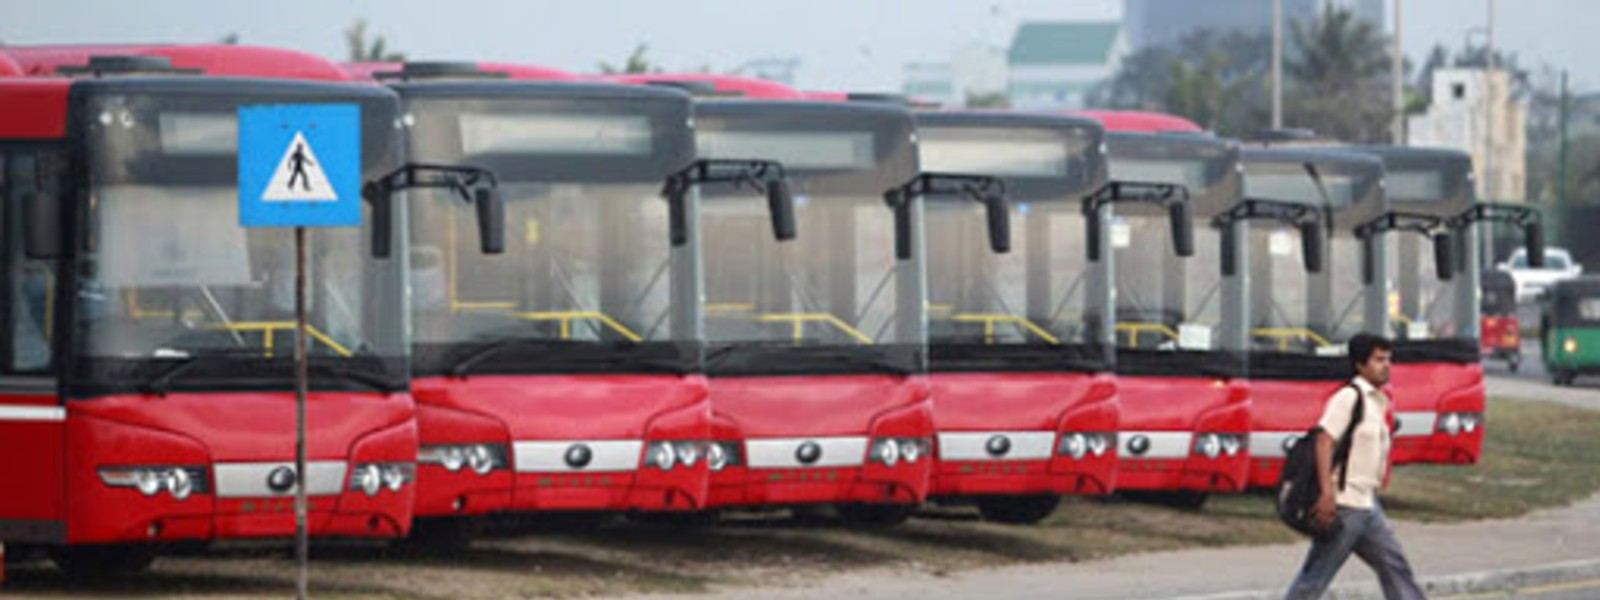 CABINET APPROVES PURCHASE OF LOW-FLOOR BUSES